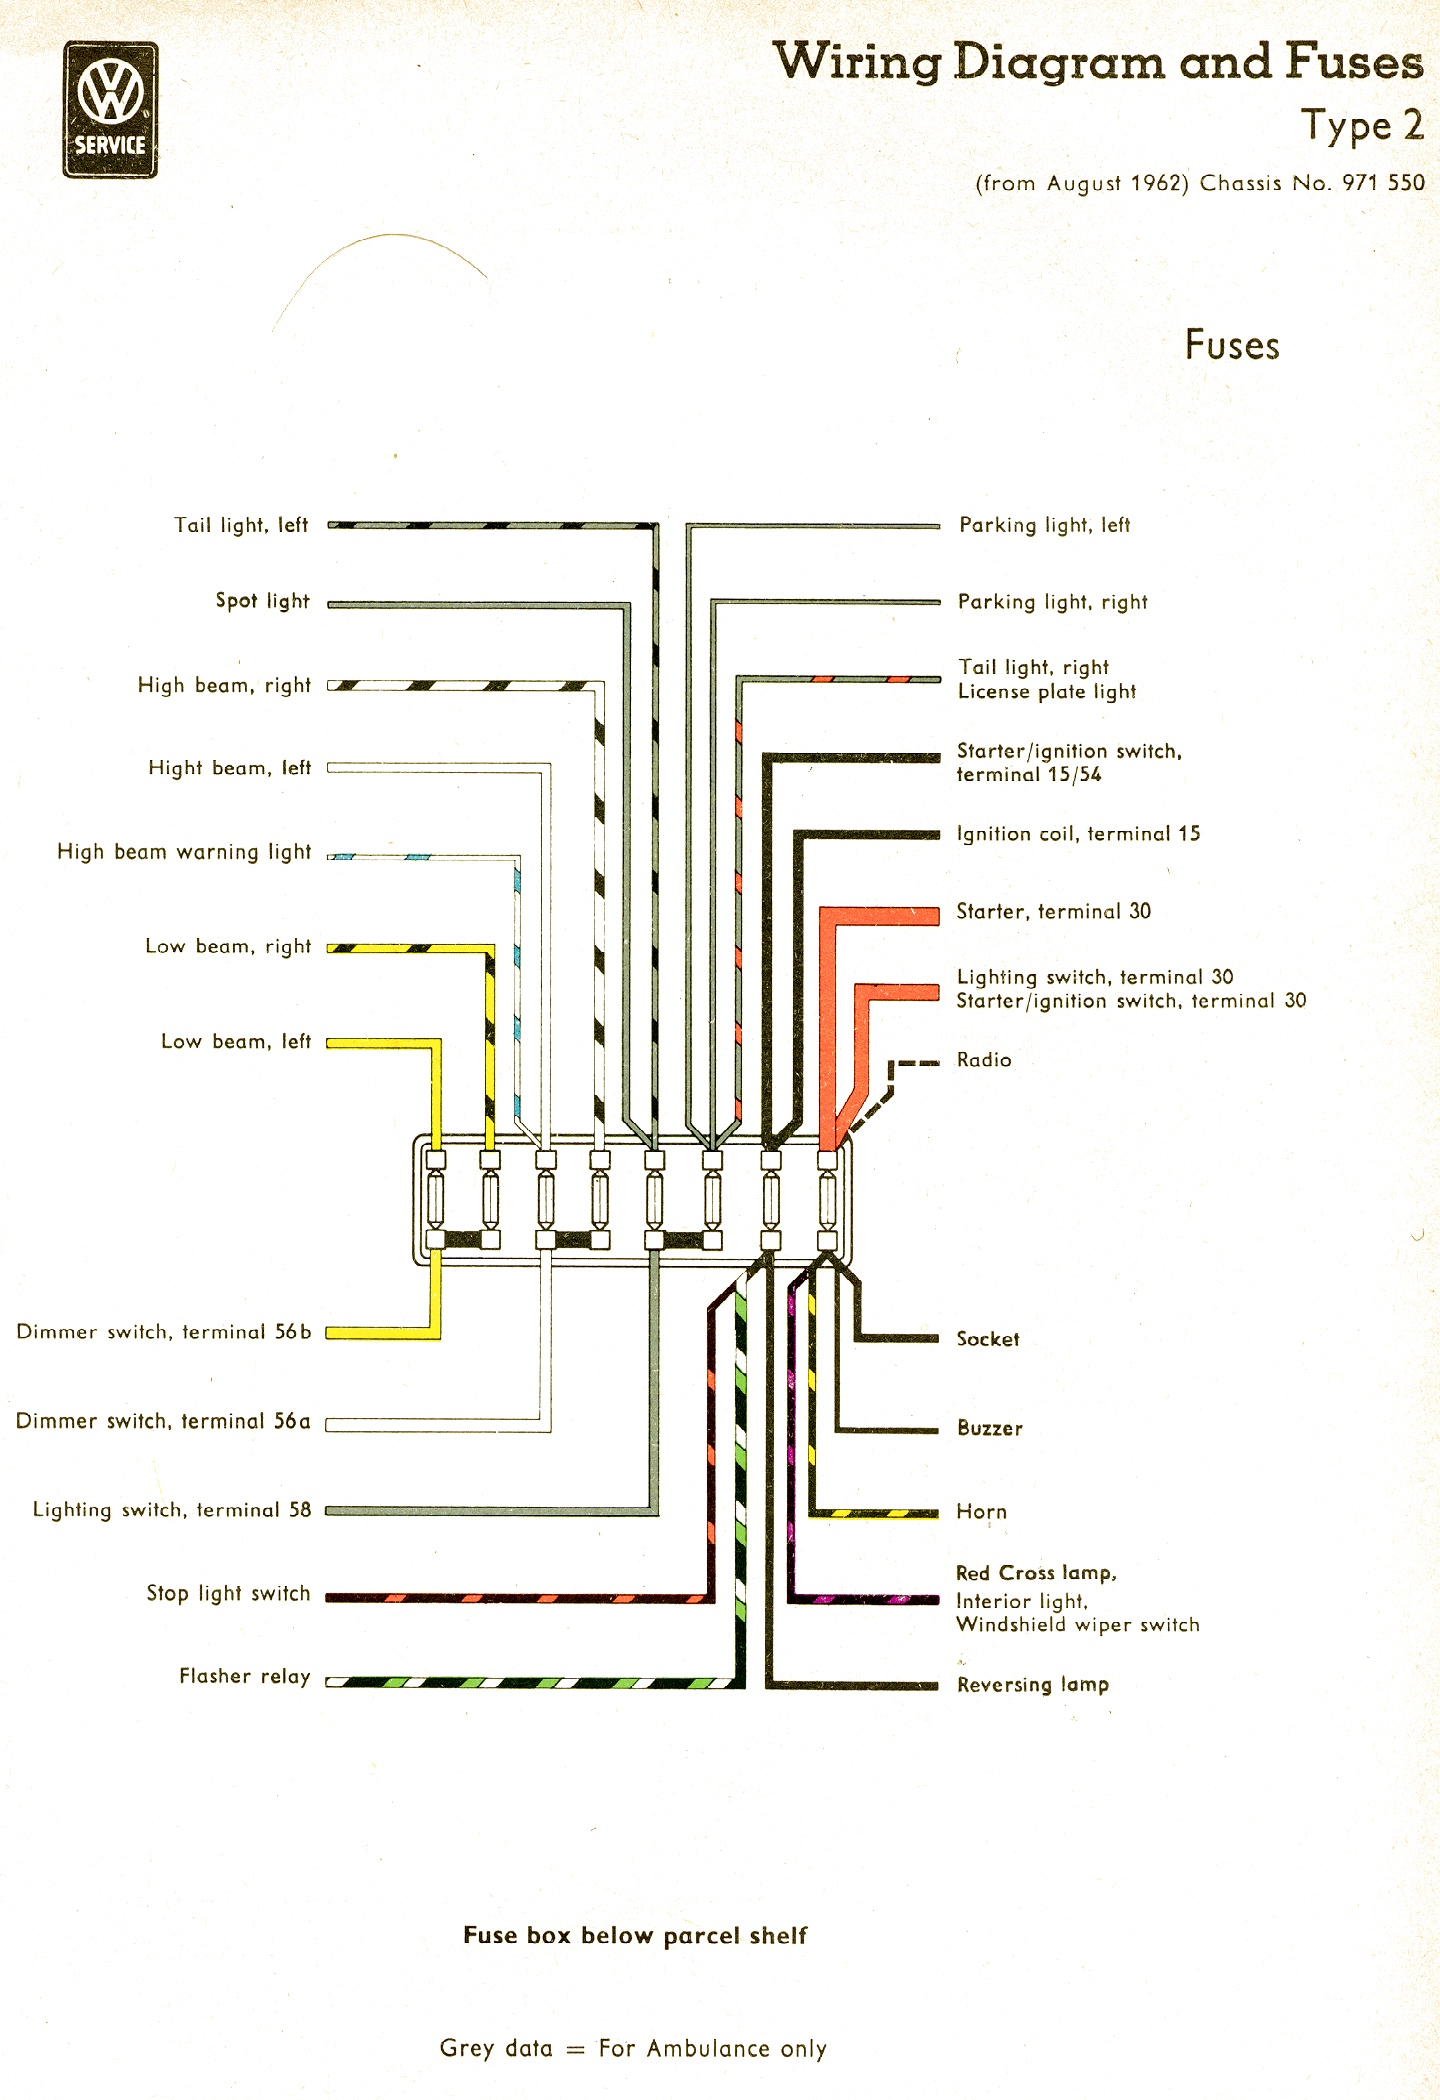 1969 Cadillac Deville Fuse Box Diagram Wiring In 2002 Mgb Explained Diagrams Rh Sbsun Co 1998